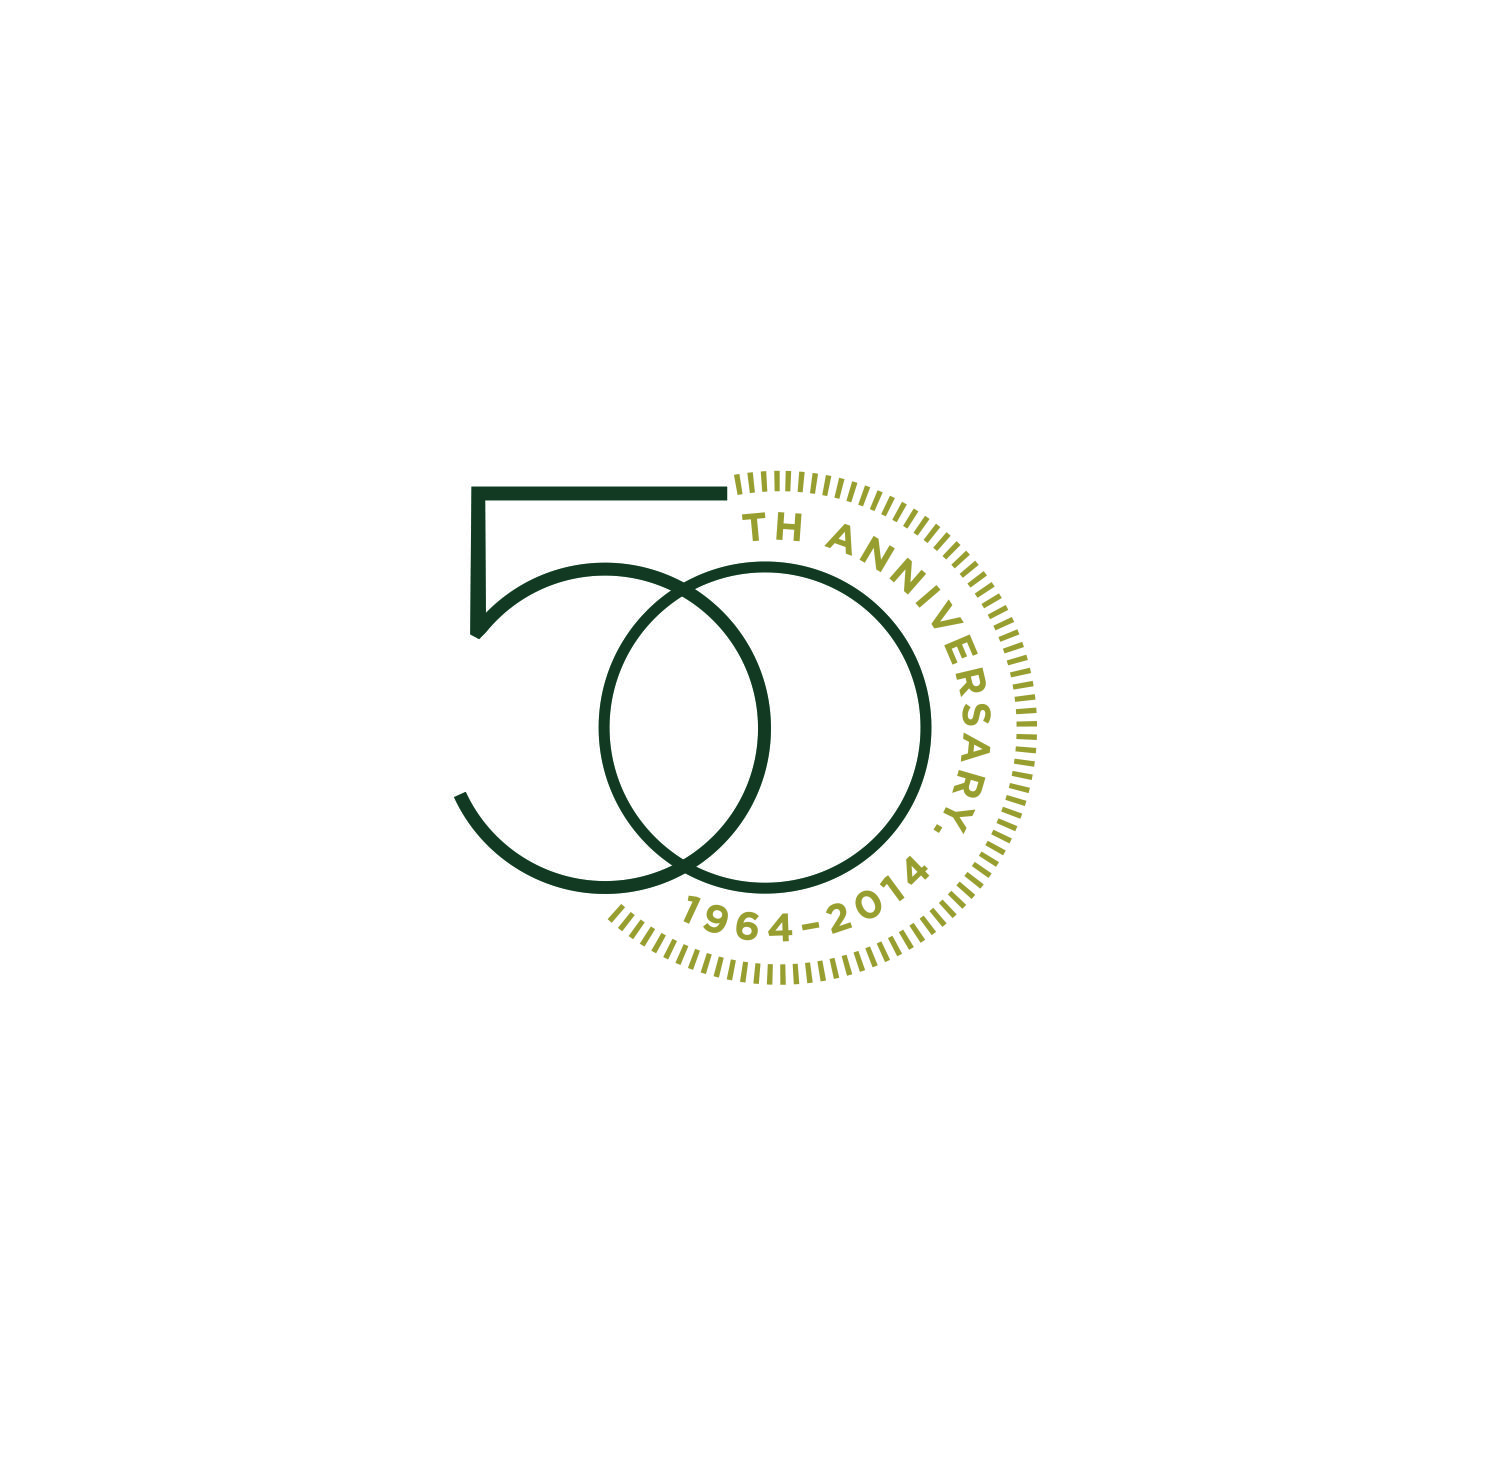 msu college of human medicine 50th anniversary logo created by extra rh pinterest es 50th anniversary logos vector 50th anniversary logos clip art